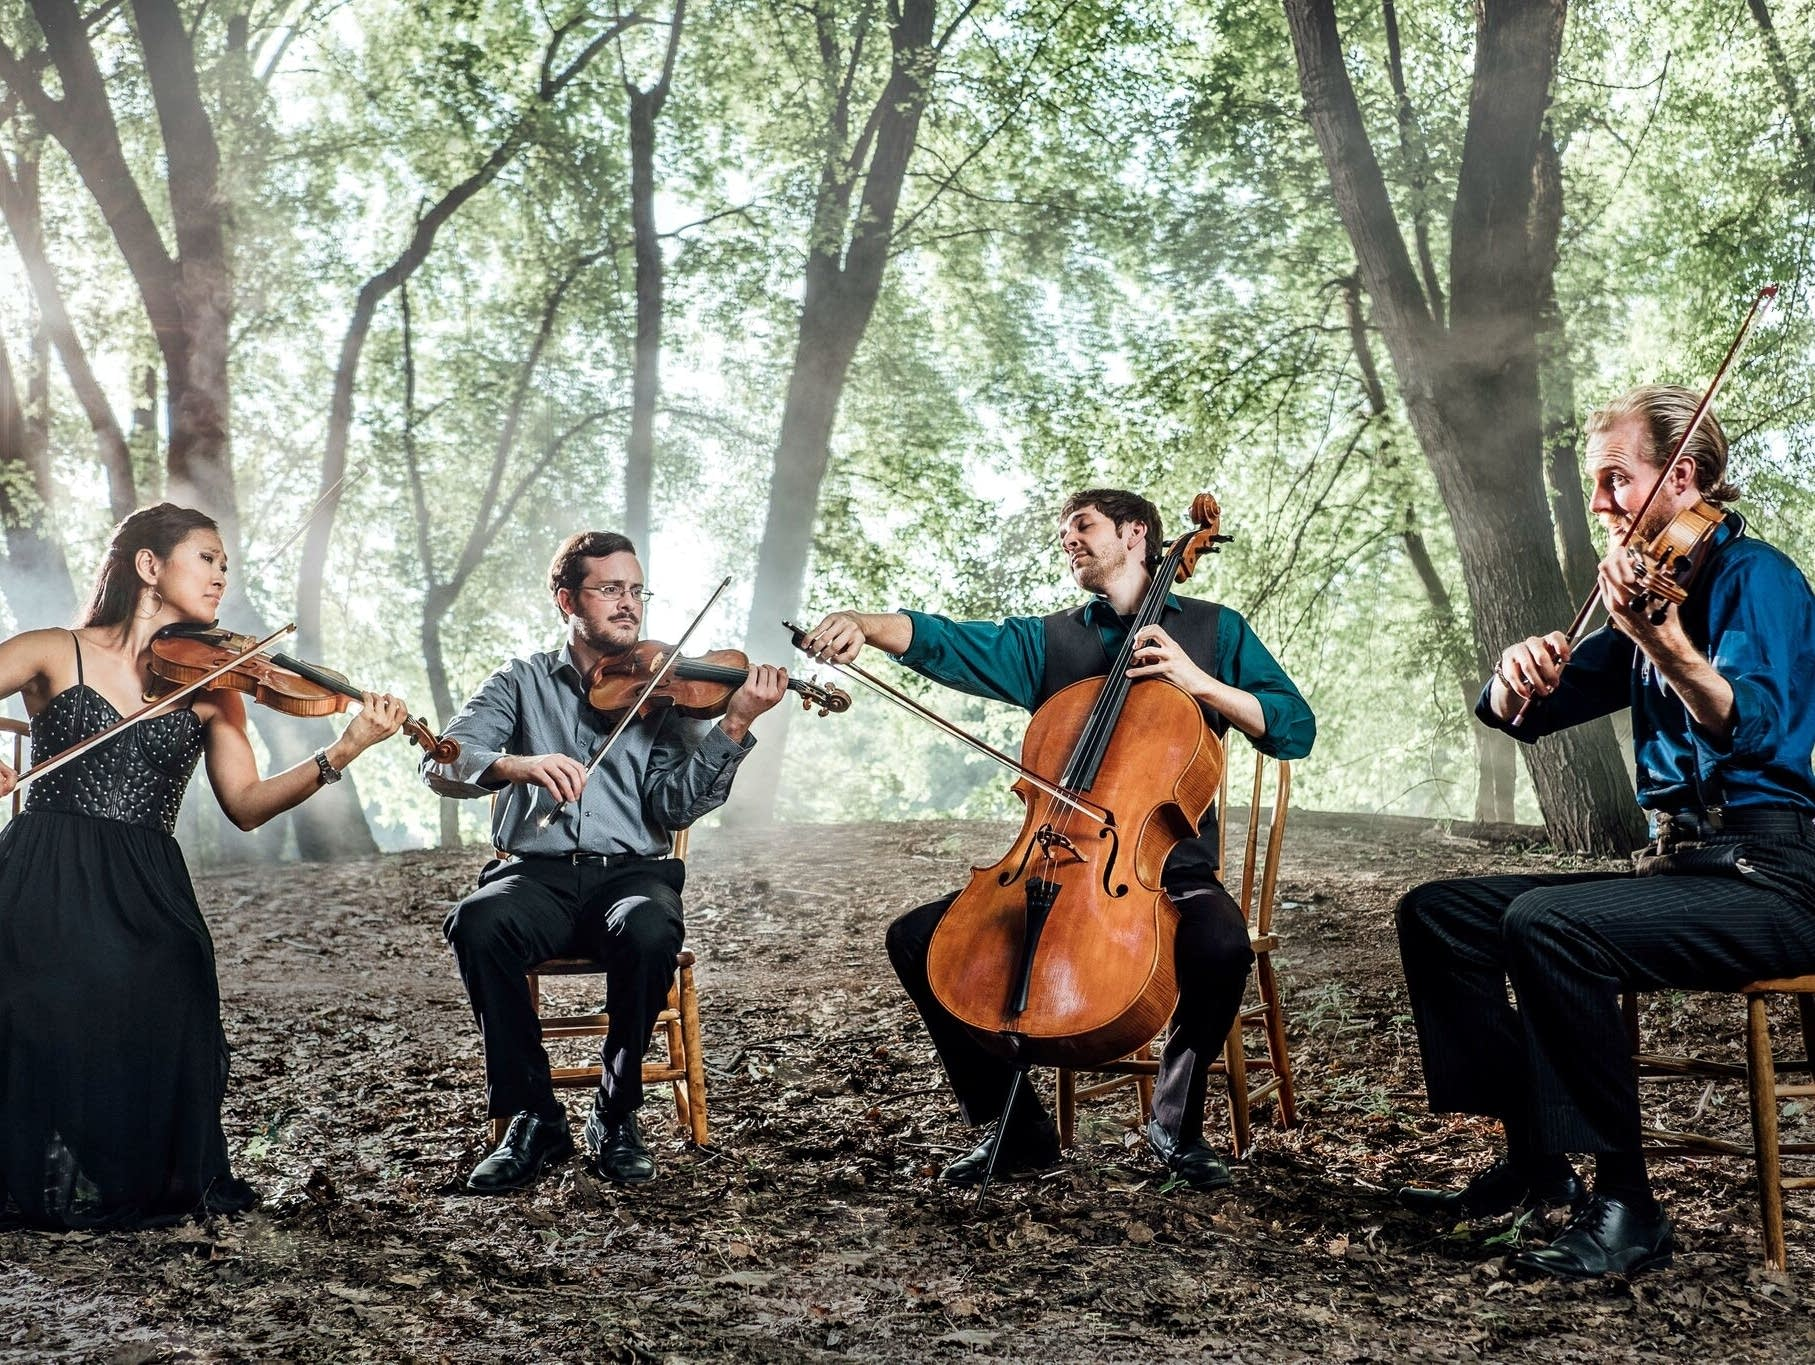 Lux String Quartet with Eric dramatic woods take 2